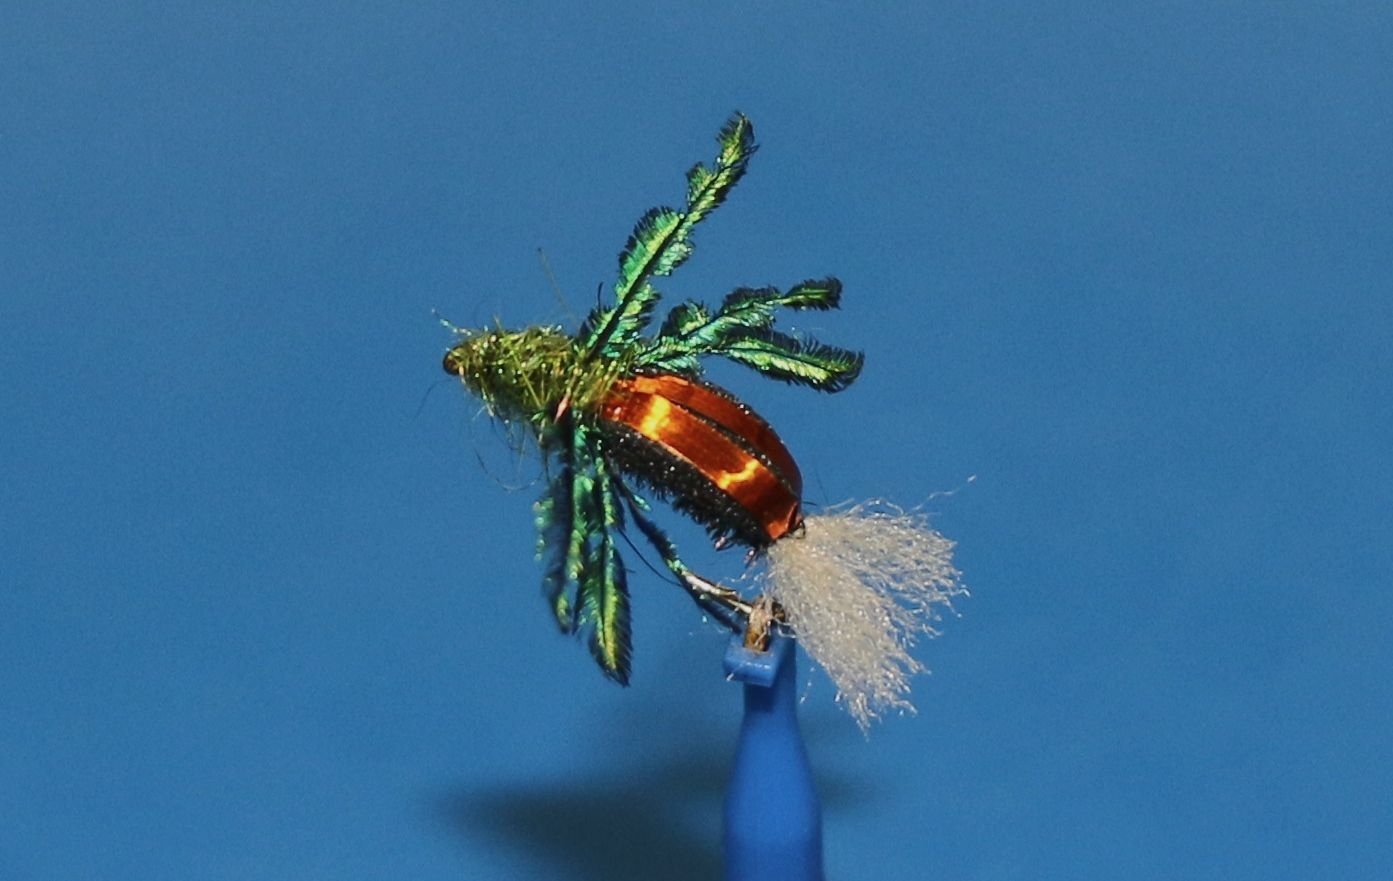 Central Alberta Fly Tying Club Three Beetle Fly Patterns With Darren Petersen